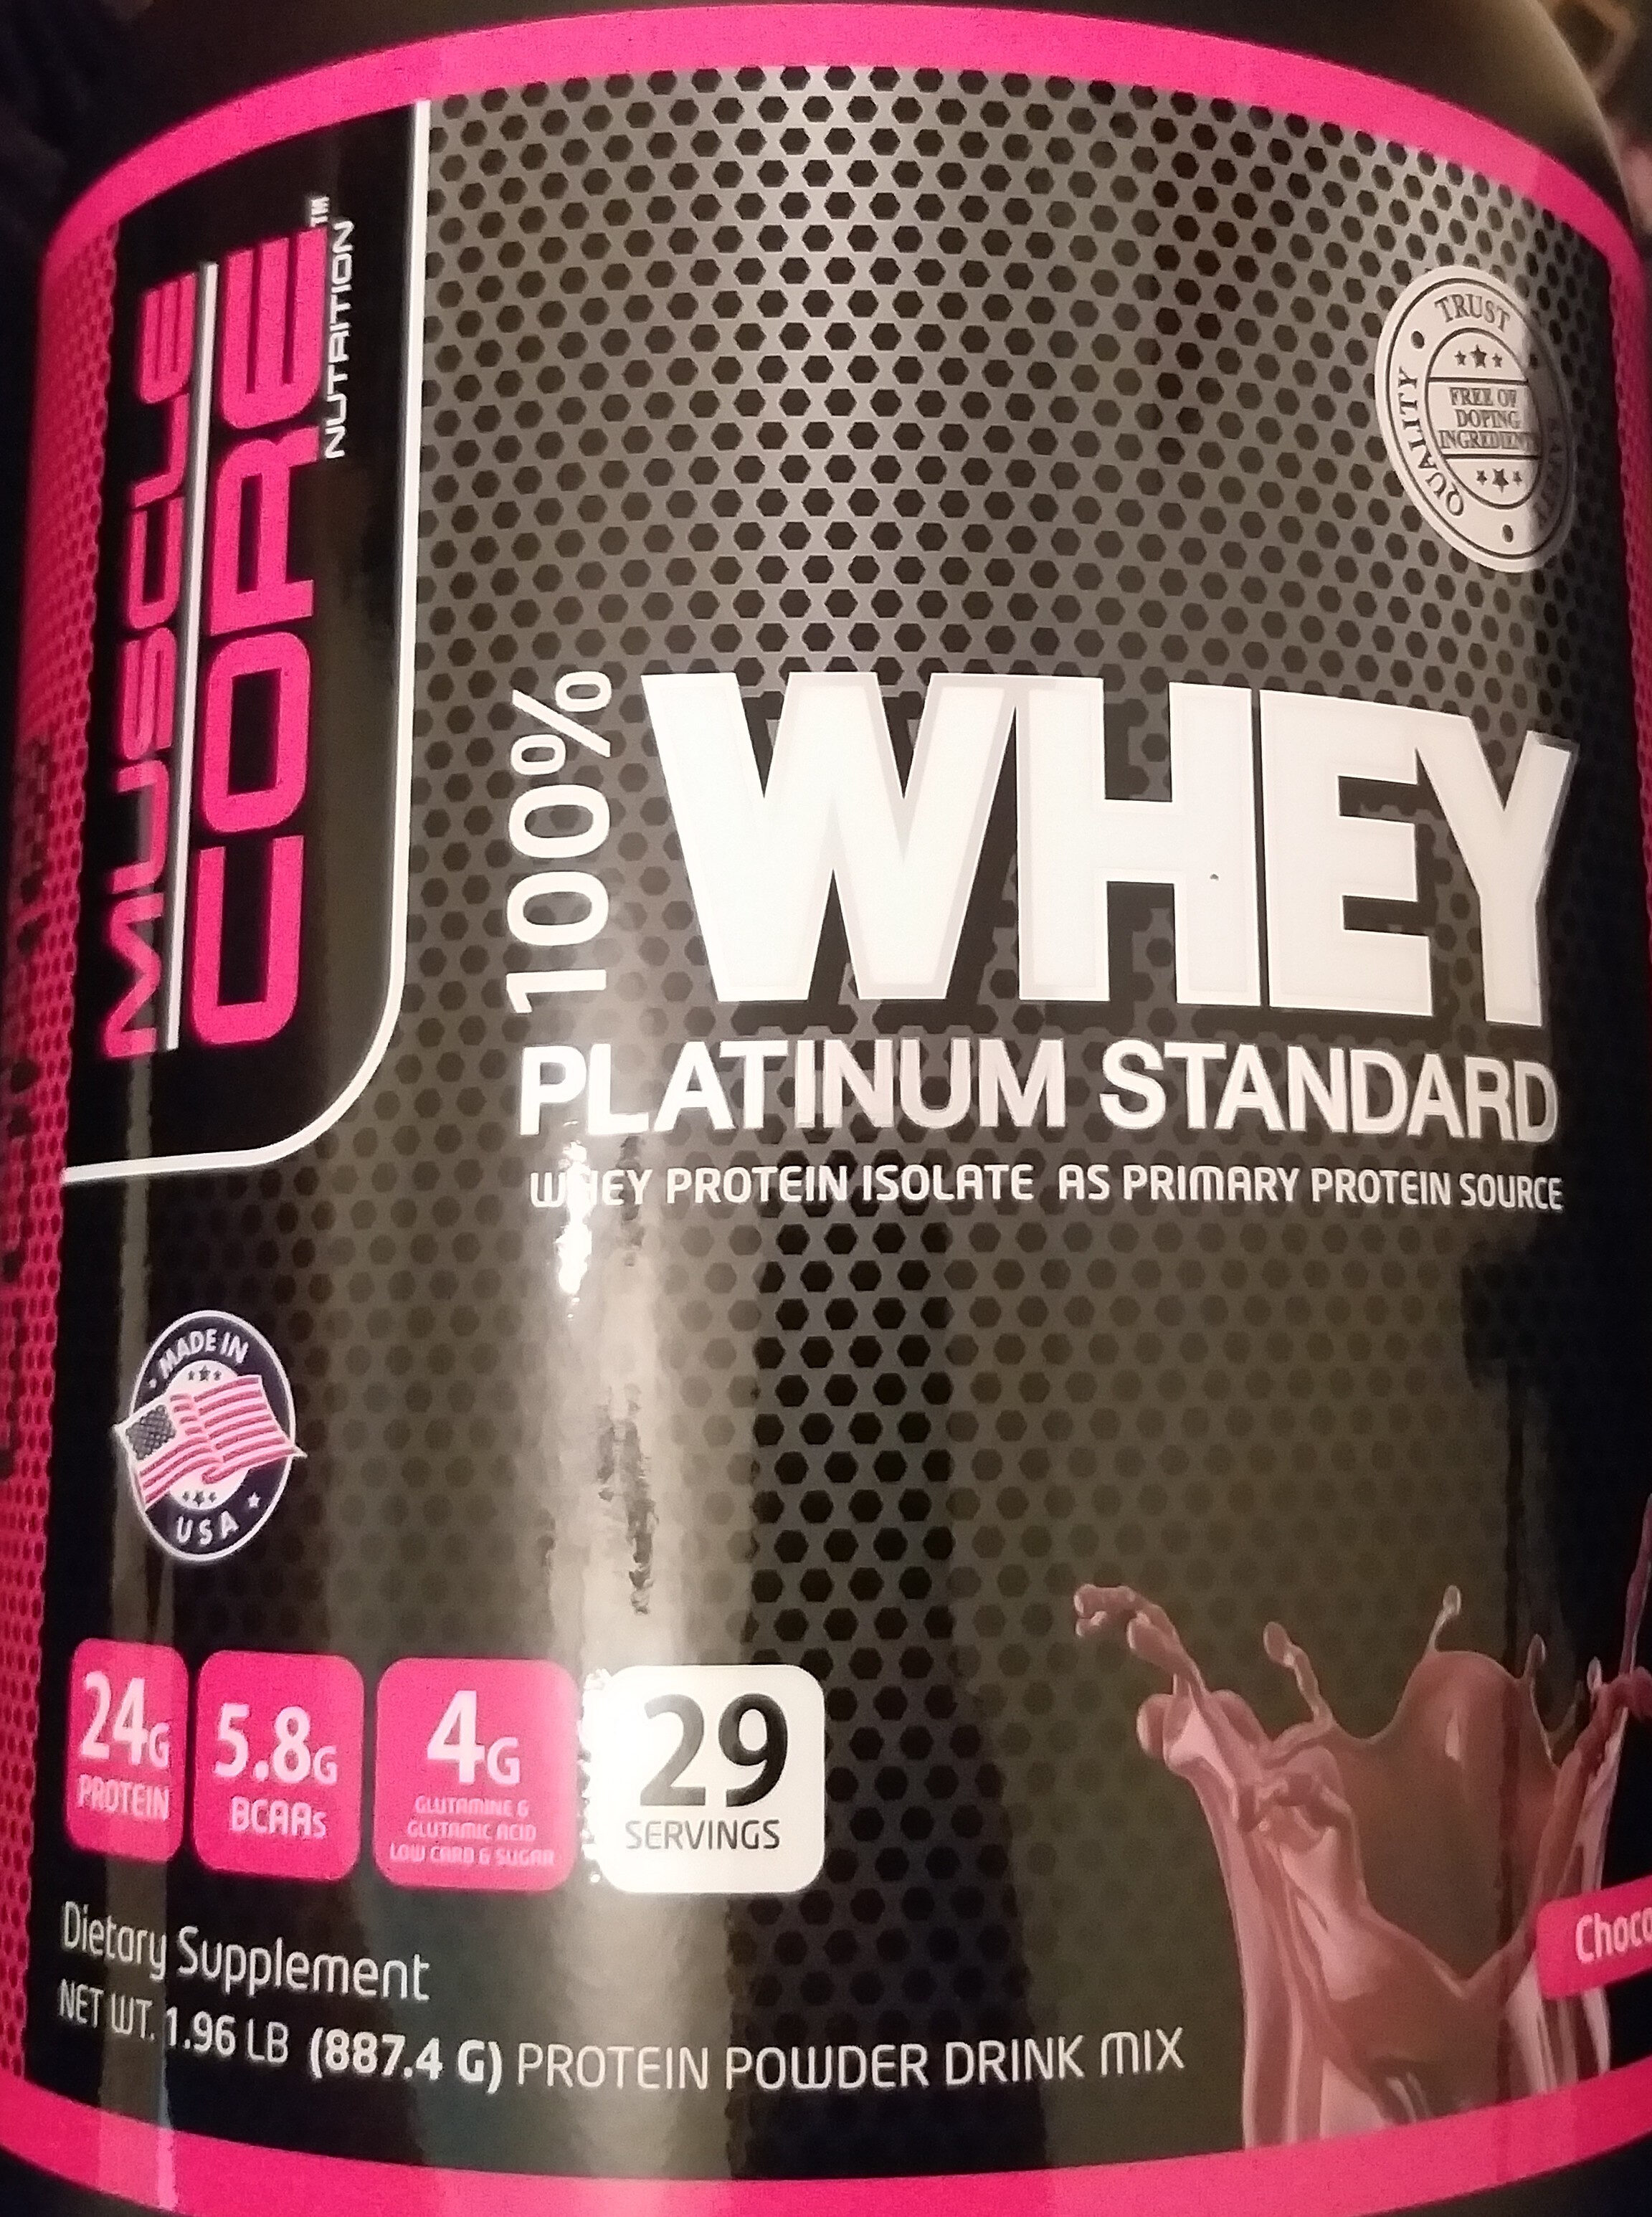 100% Whey platinum standard - Nutrition facts